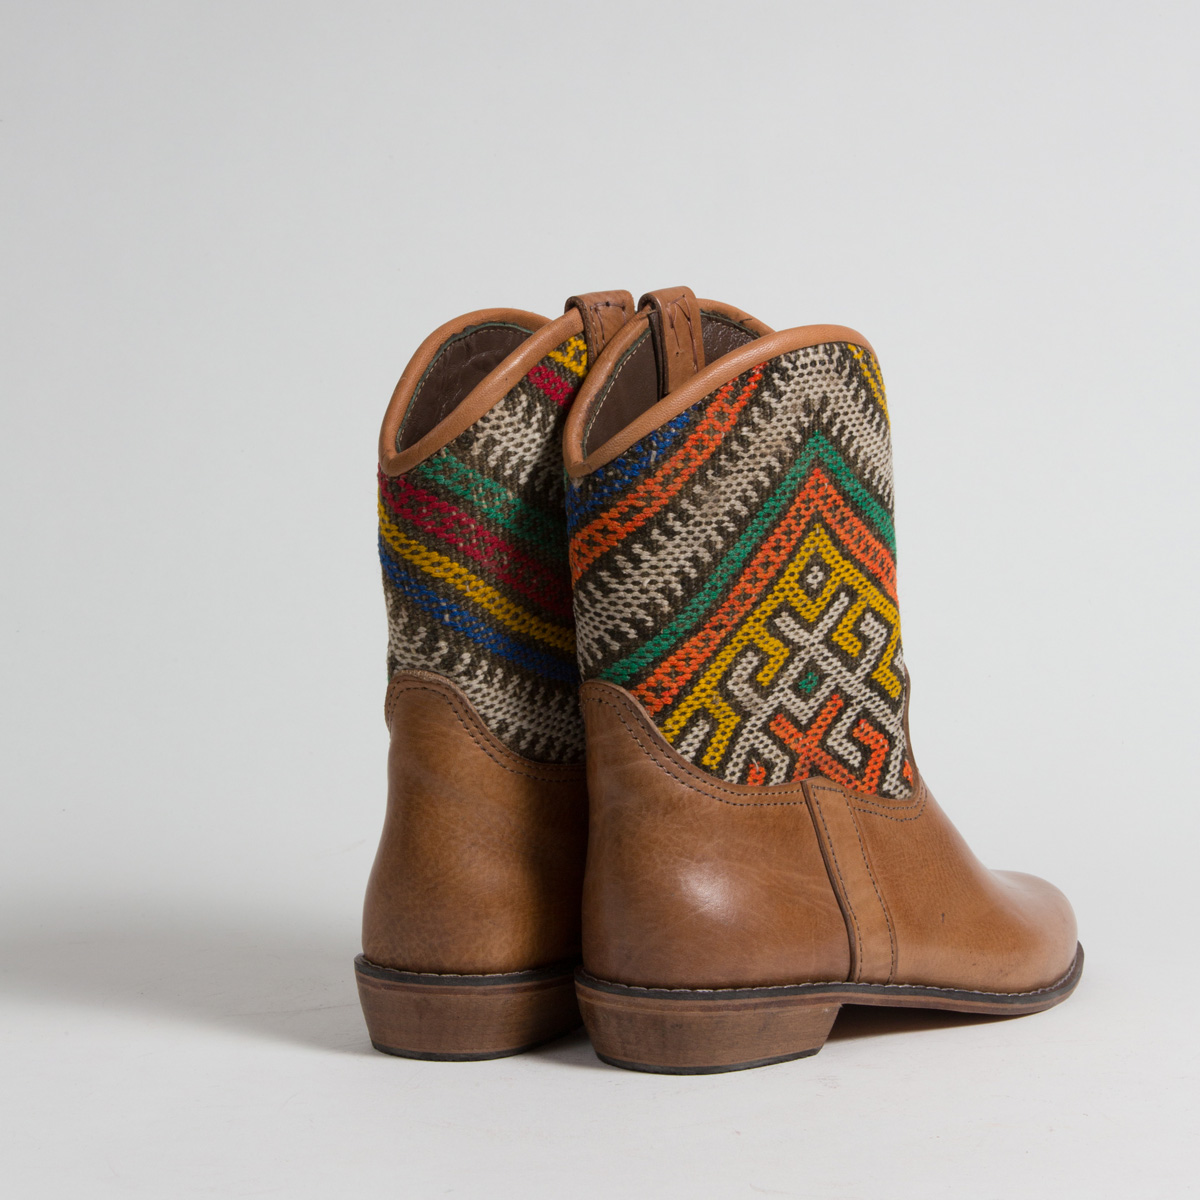 Bottines Kilim cuir mababouche artisanales (Réf. P9-40)